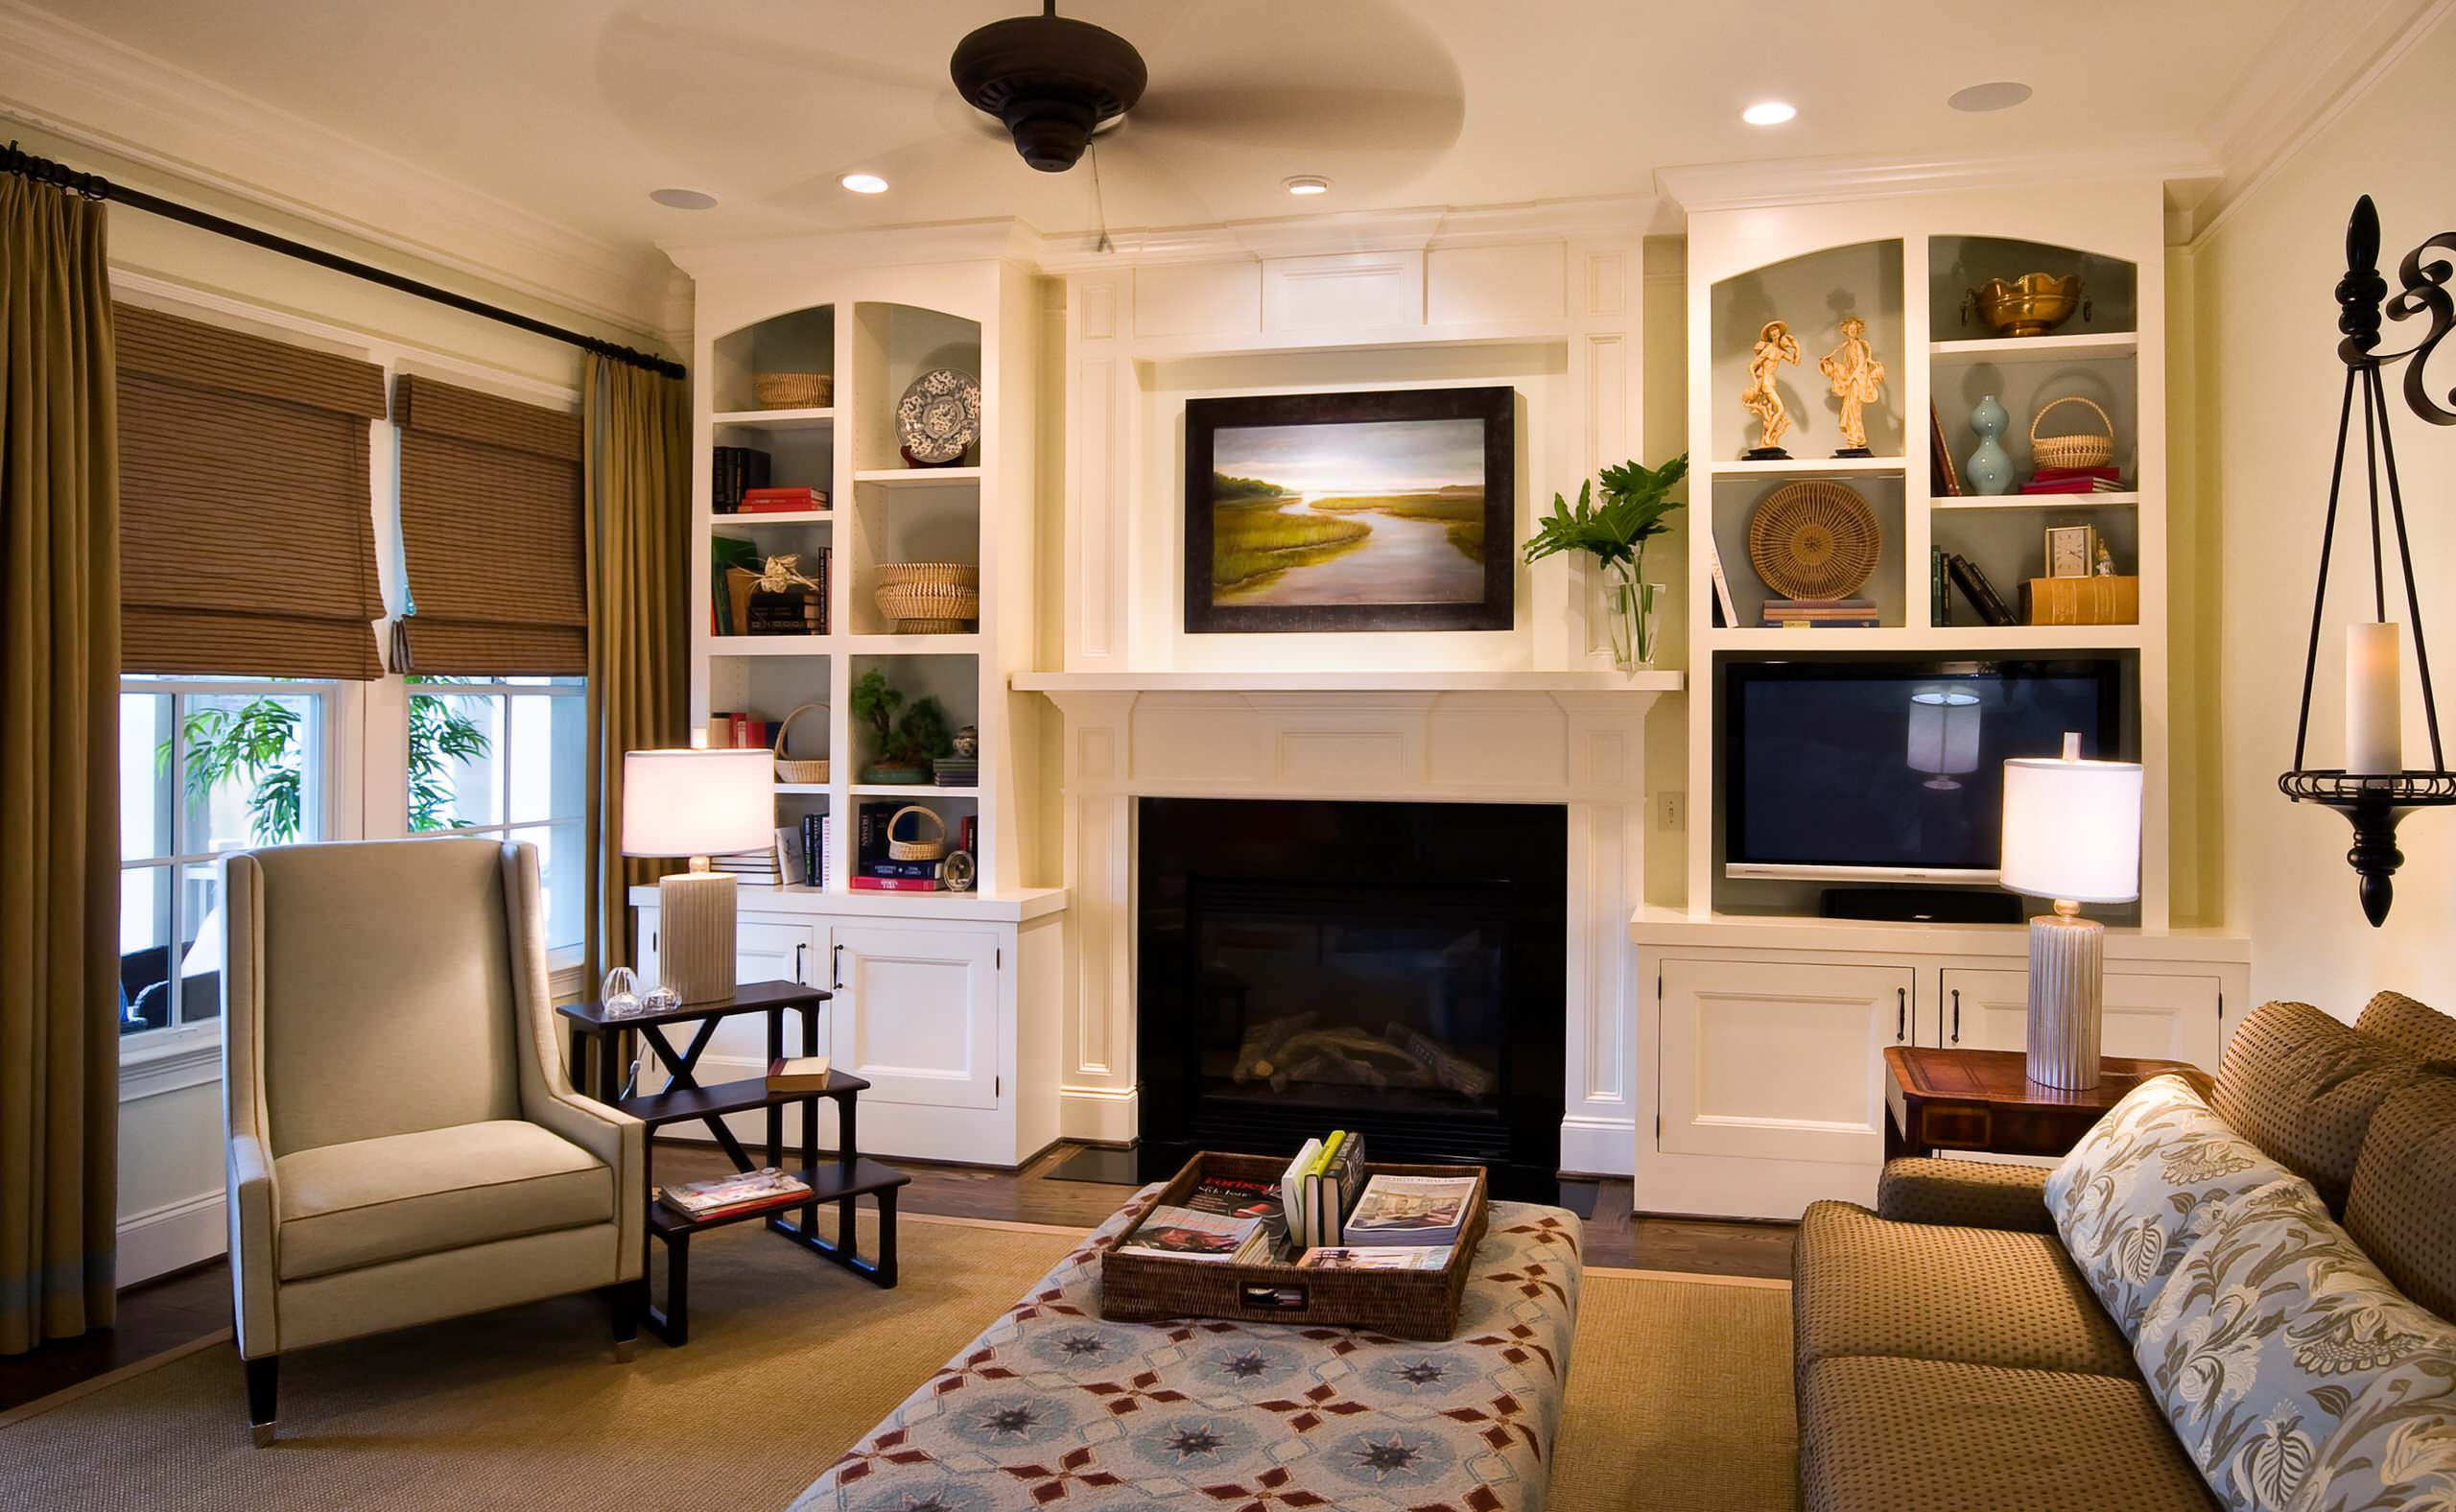 Off-Center Fireplace Living Room Ideas & Photos | Houzz